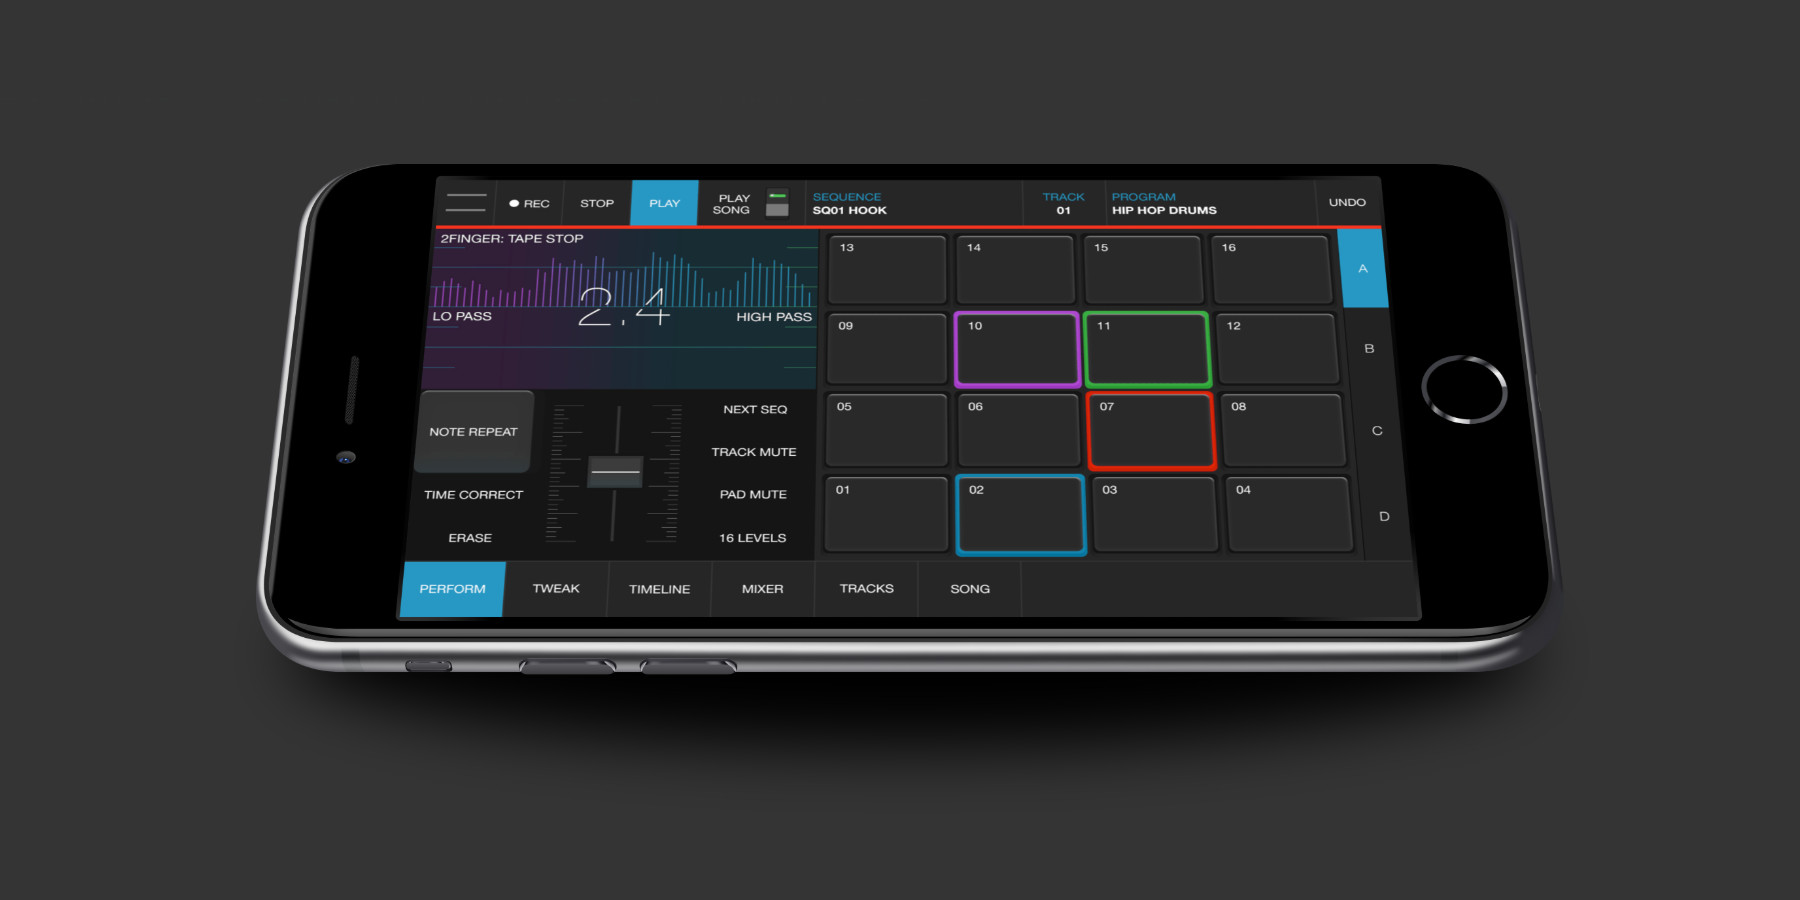 Akai's iMPC Pro 2 production app for iOS at nearly 50% off, deals from $5